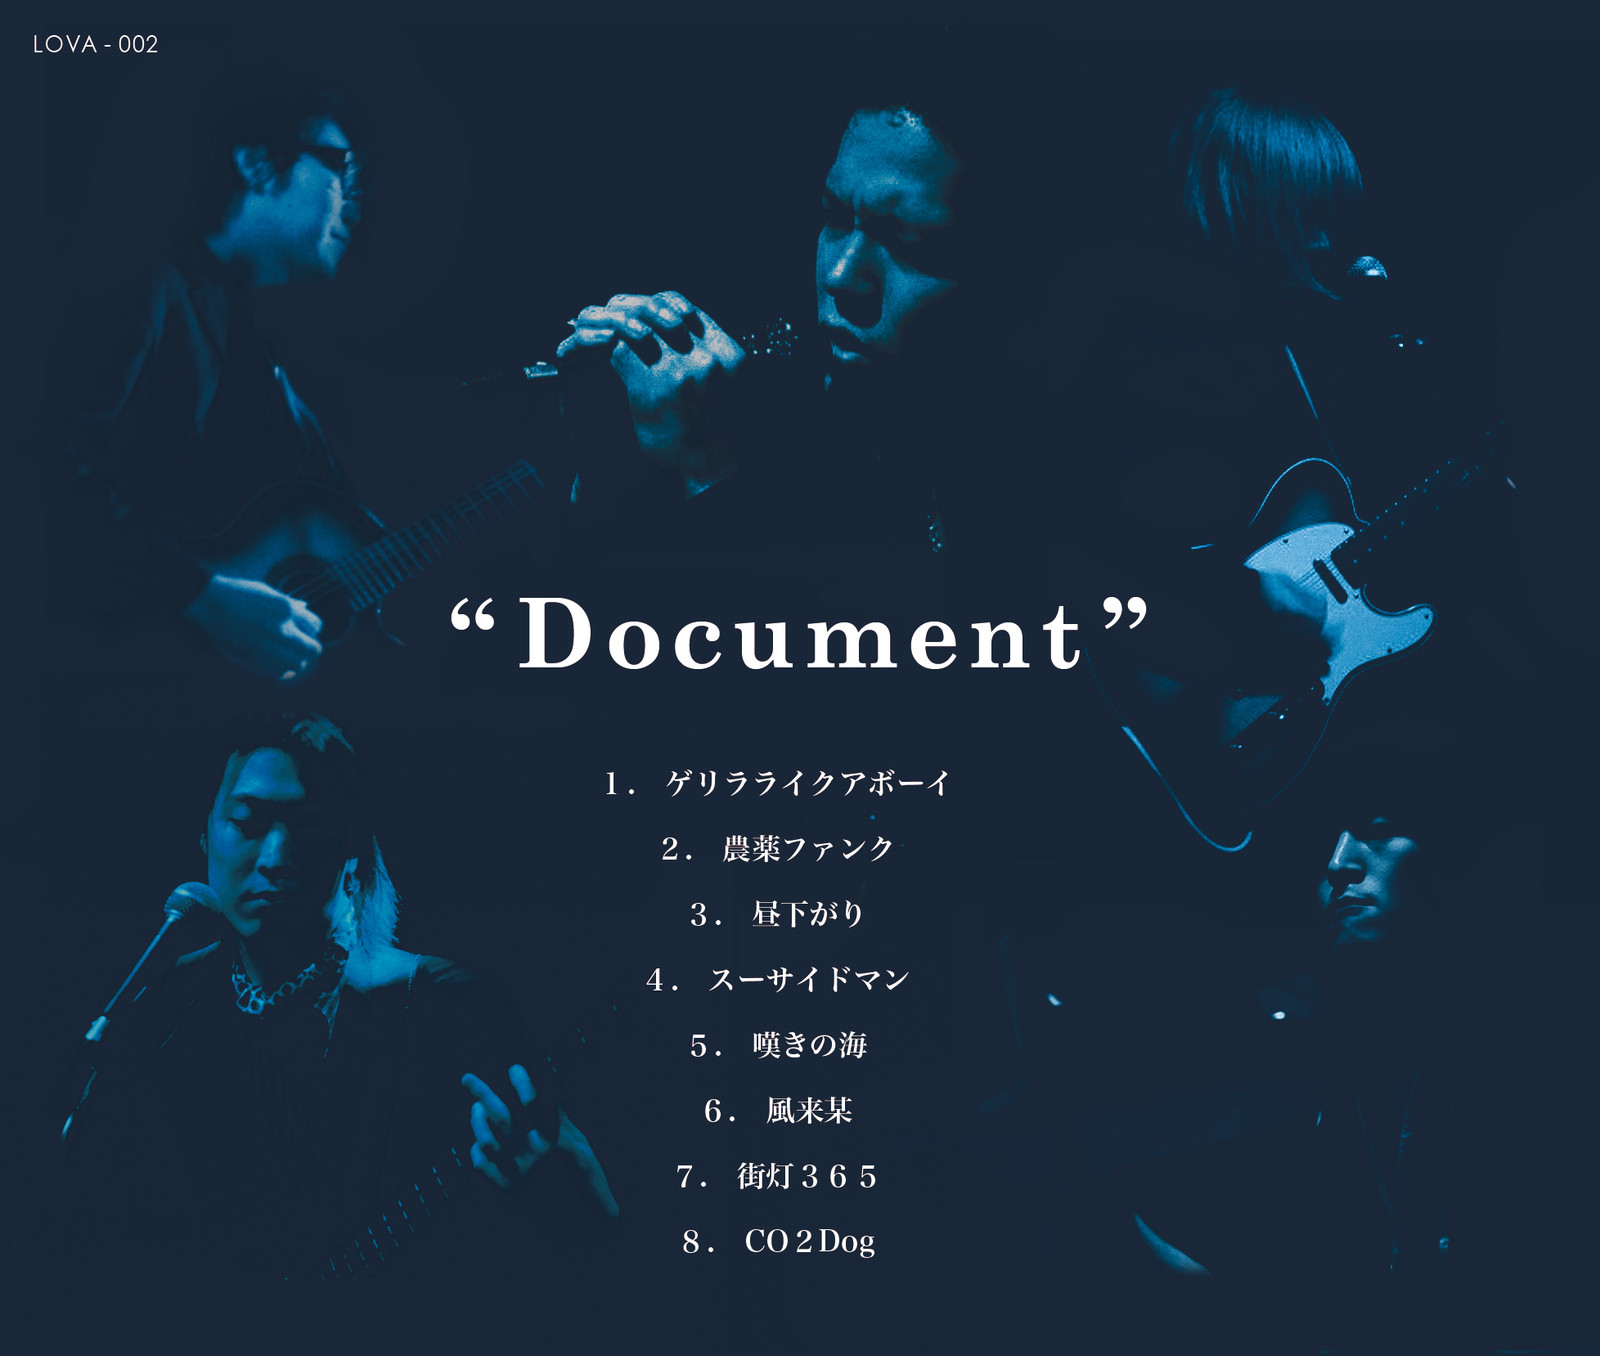 Documentback